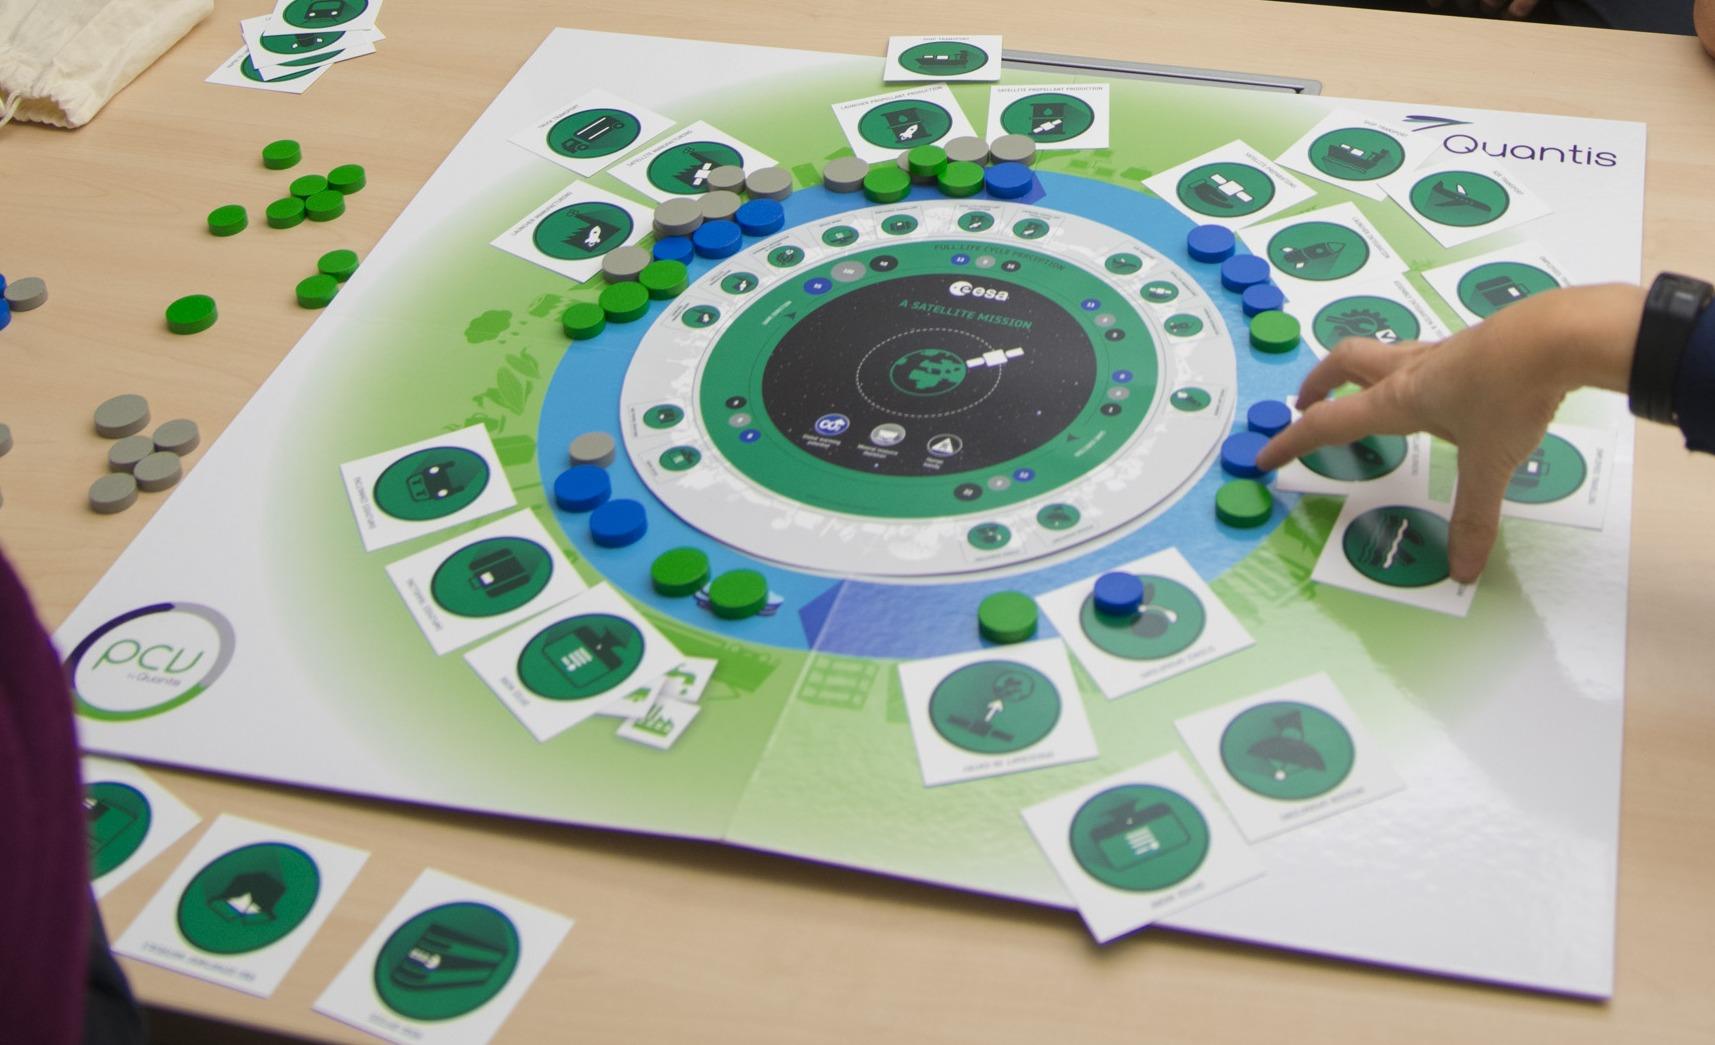 Space In Images Clean Space Board Game - Board game design